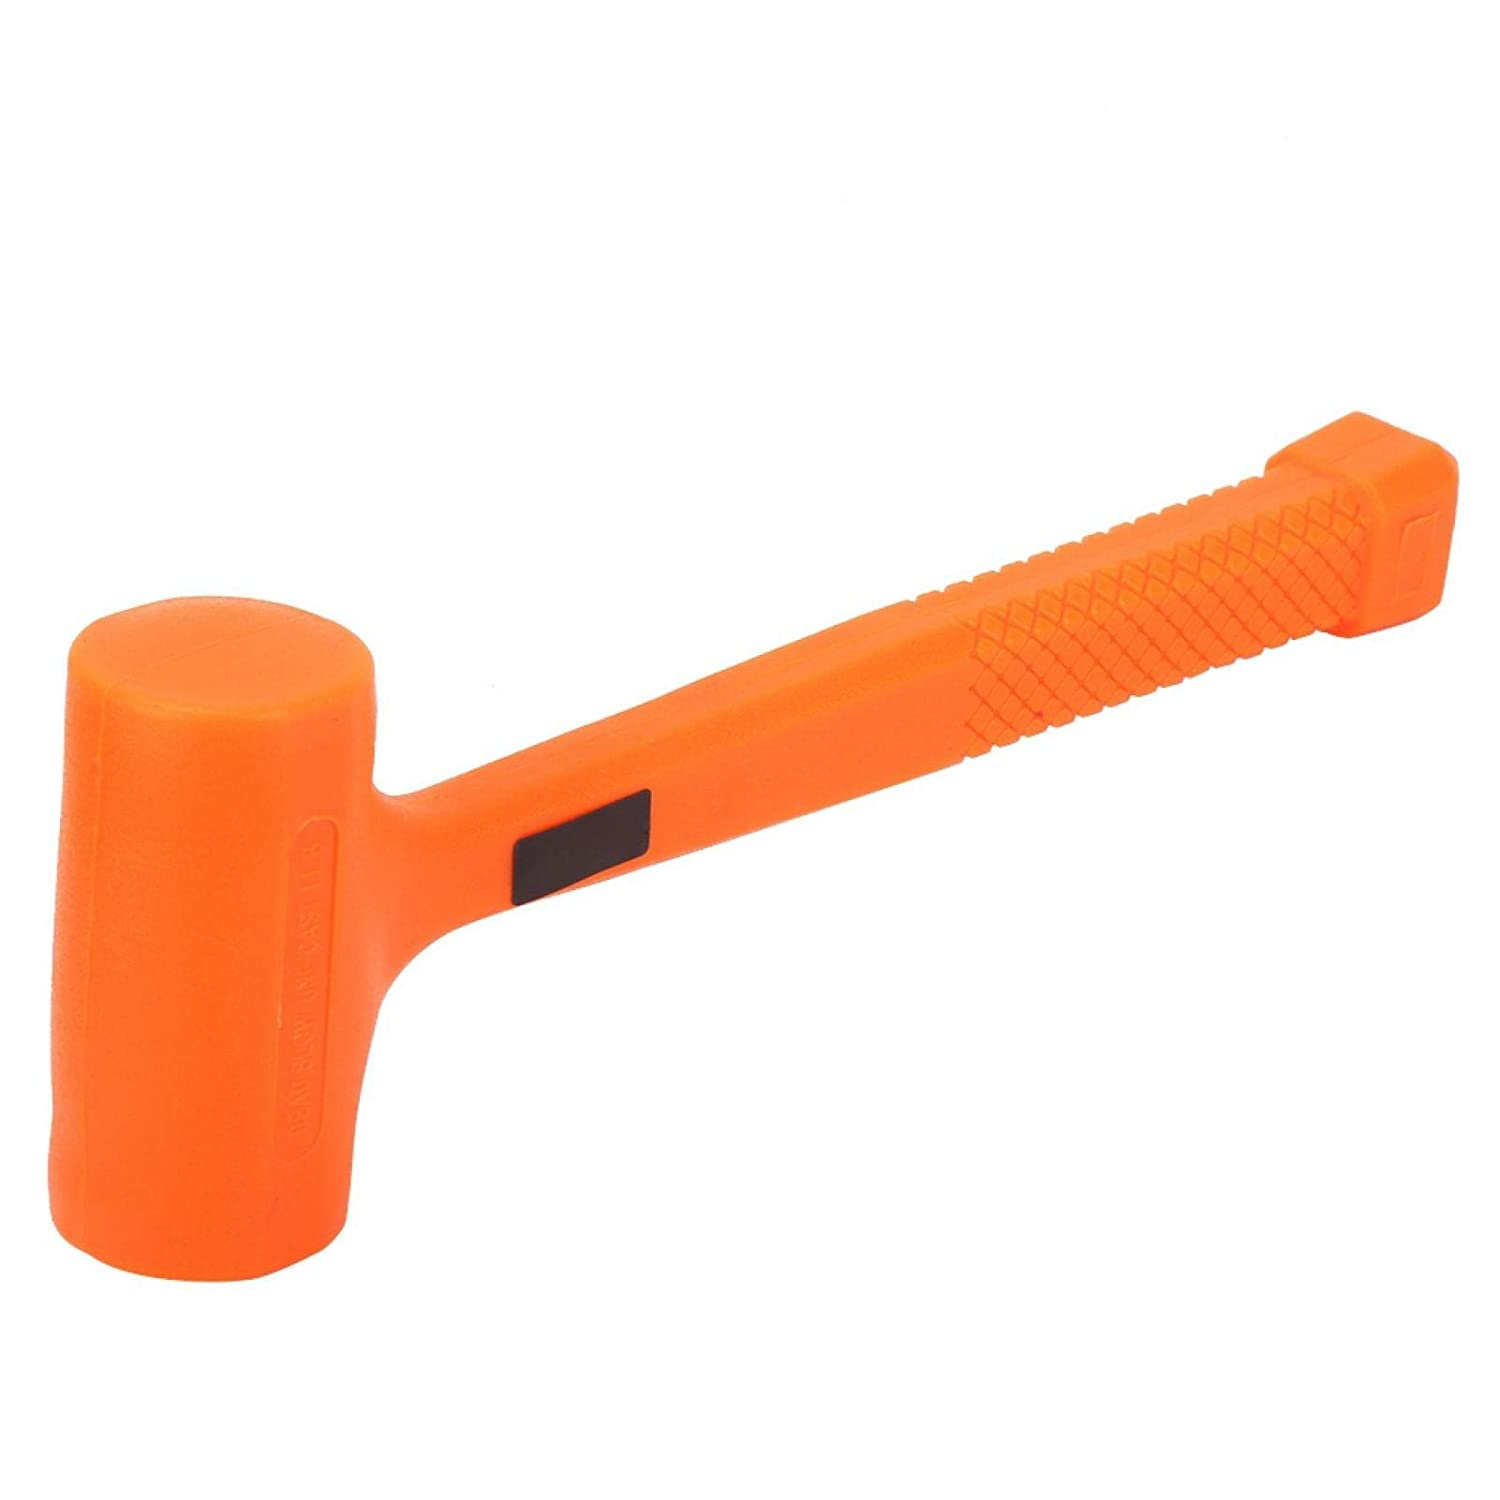 No All stores are sold Elastic Hammer no Damage Dead Soft Ha Blow Very popular Face